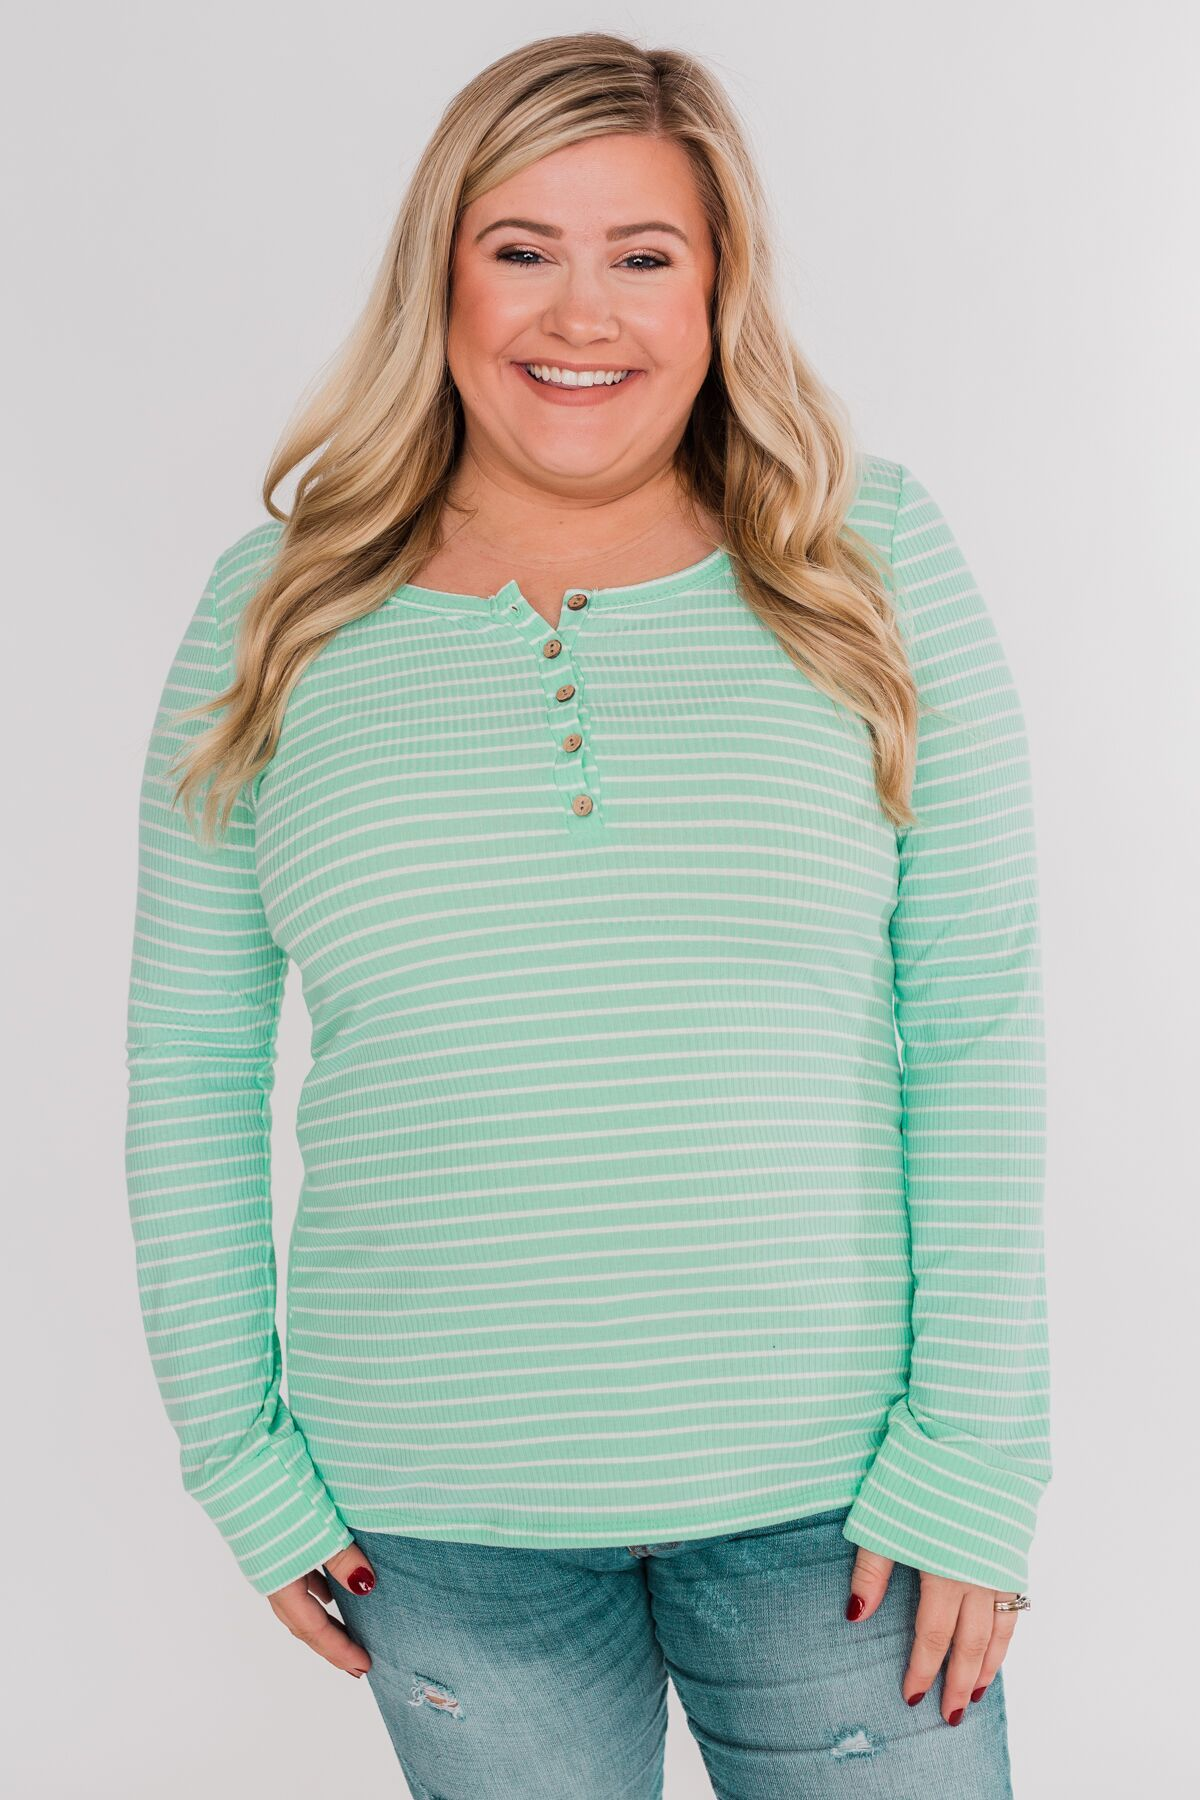 Happy As Can Be Striped Henley Top- Cheerful Mint